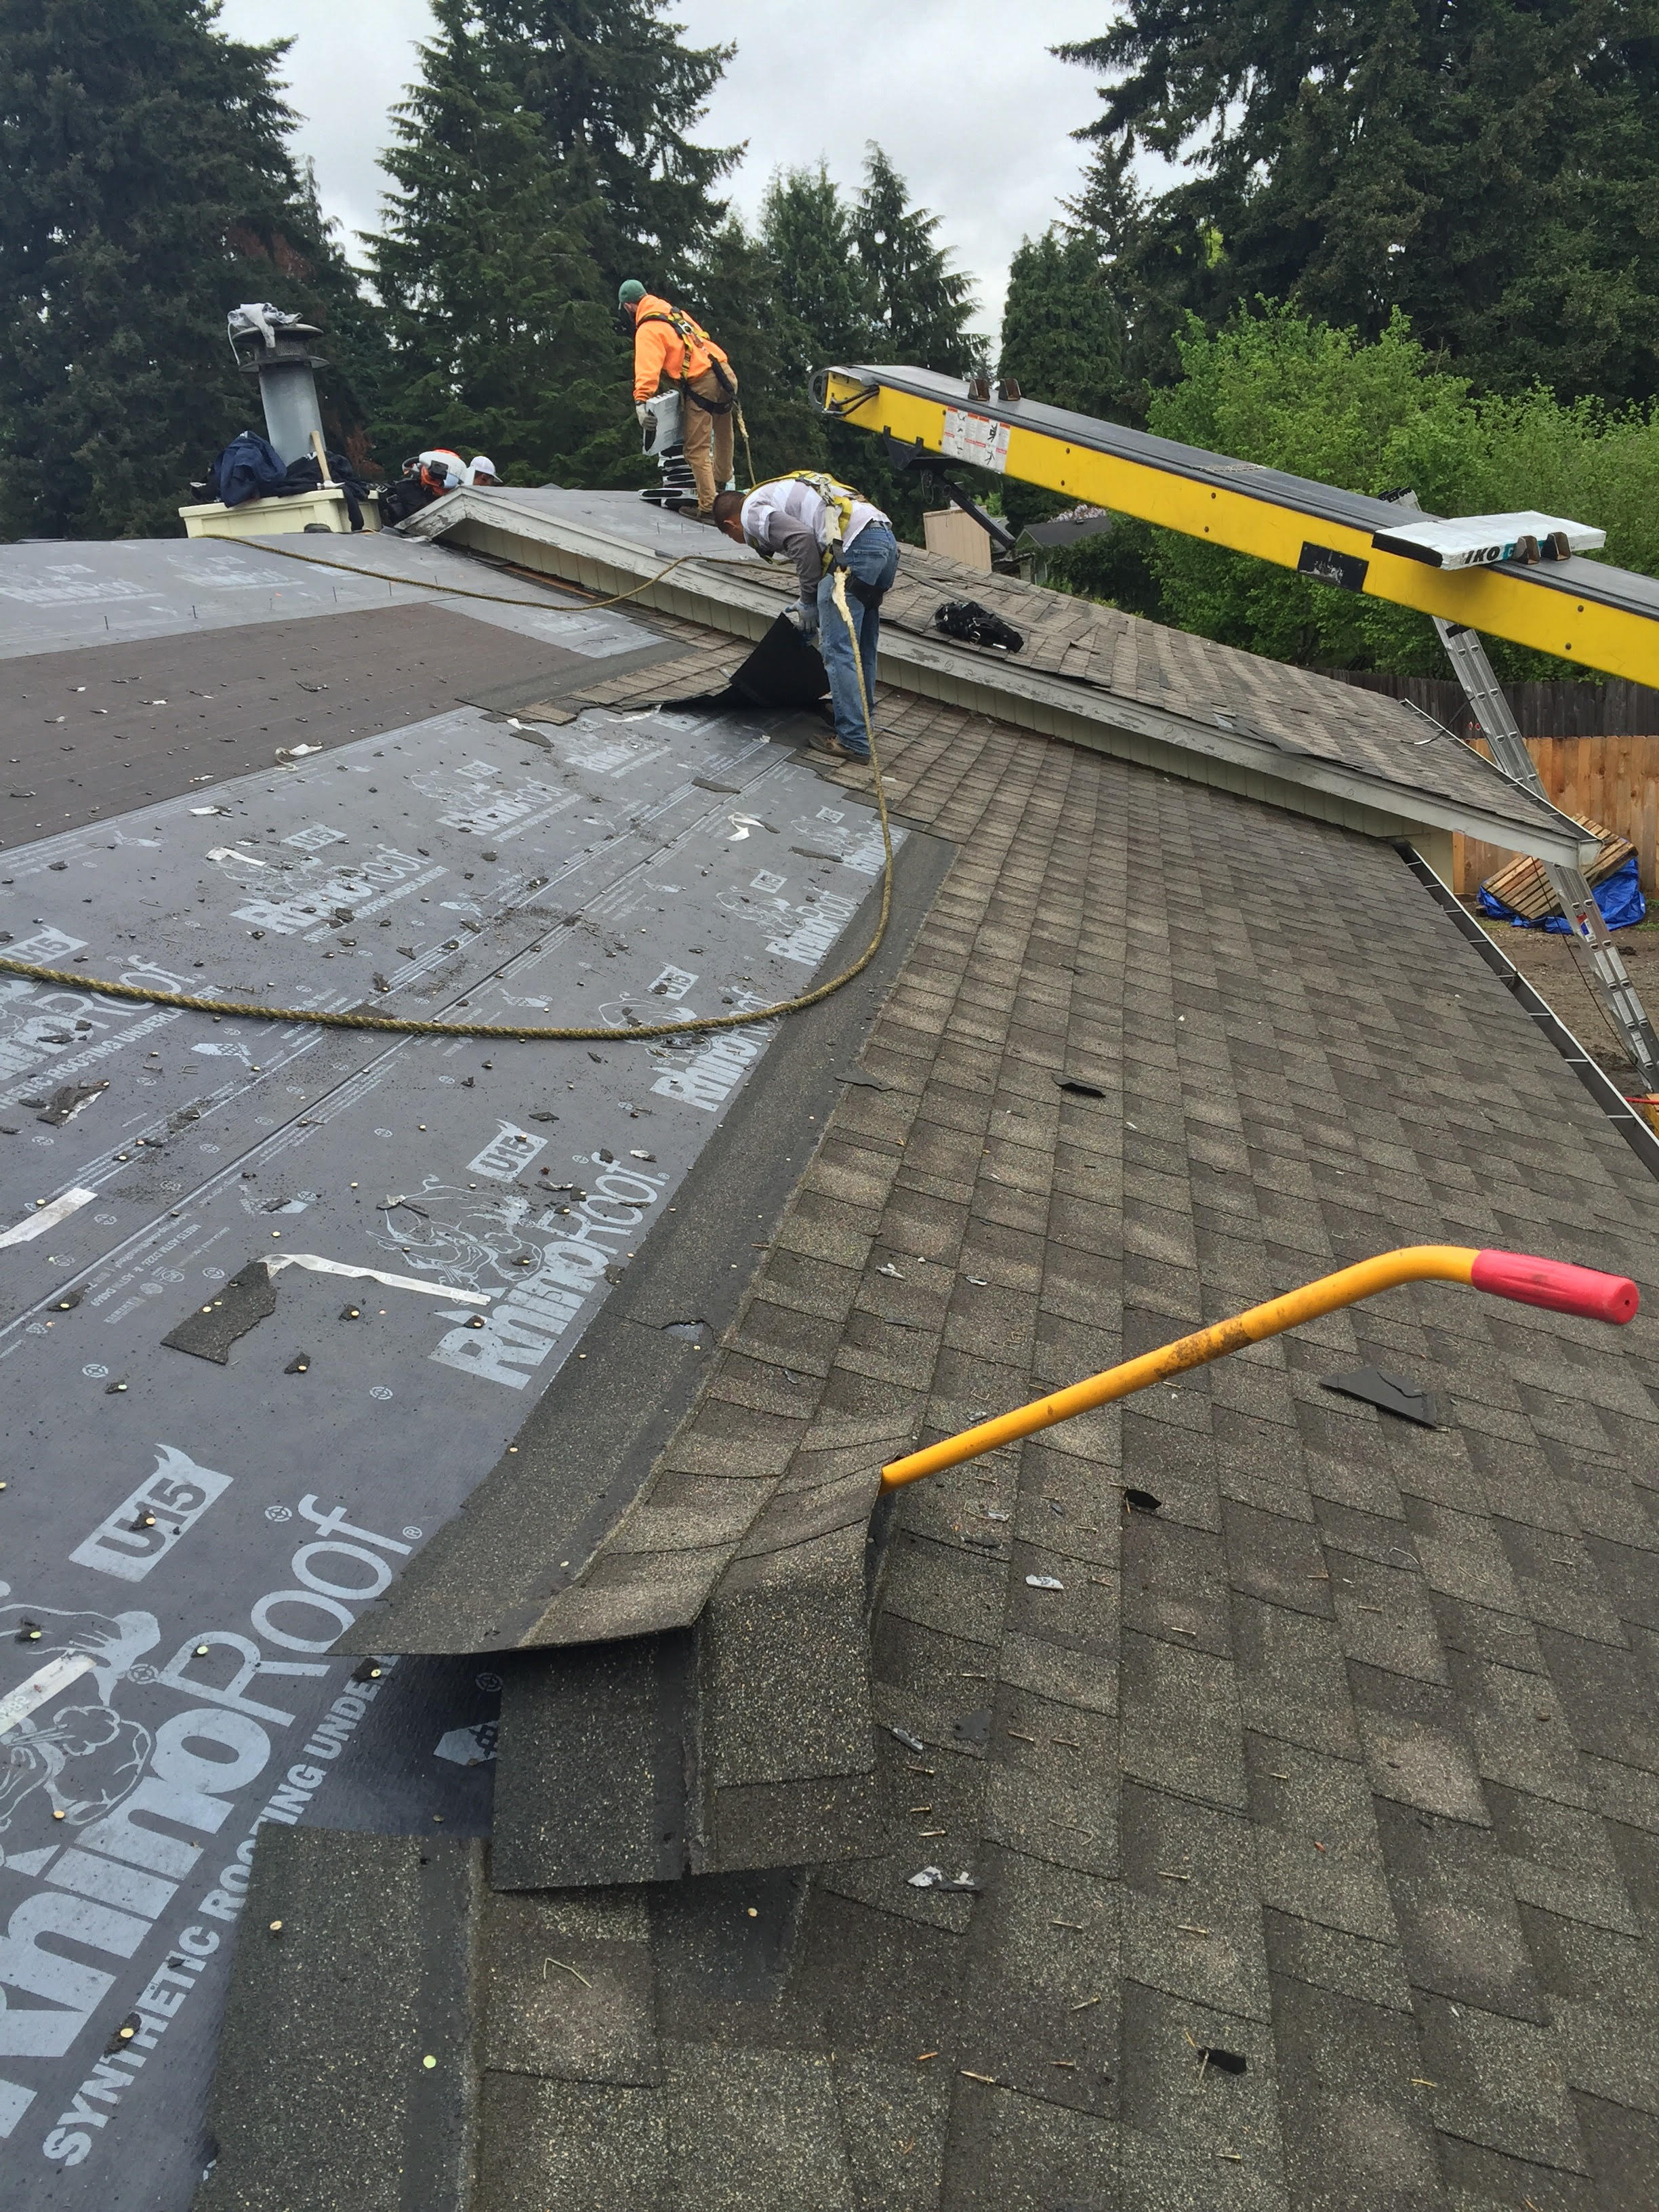 New Roof Installation : New roof installation vancouver wa j and h roofing llc